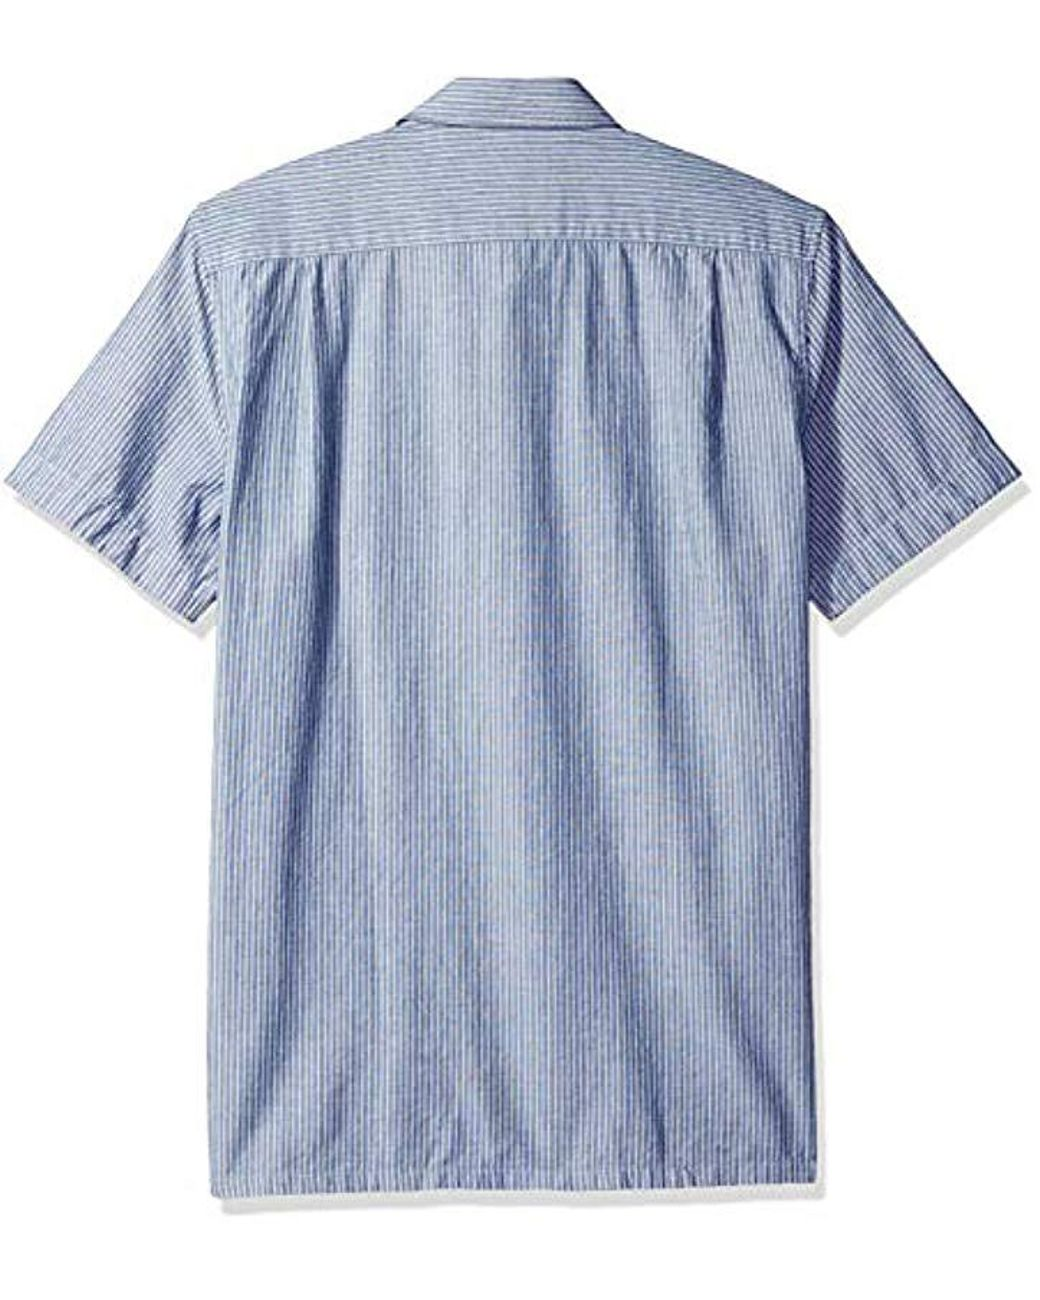 b7c97844 Men's Short Sleeve Reg Fit Blue Pack Striped Chambray Button Down